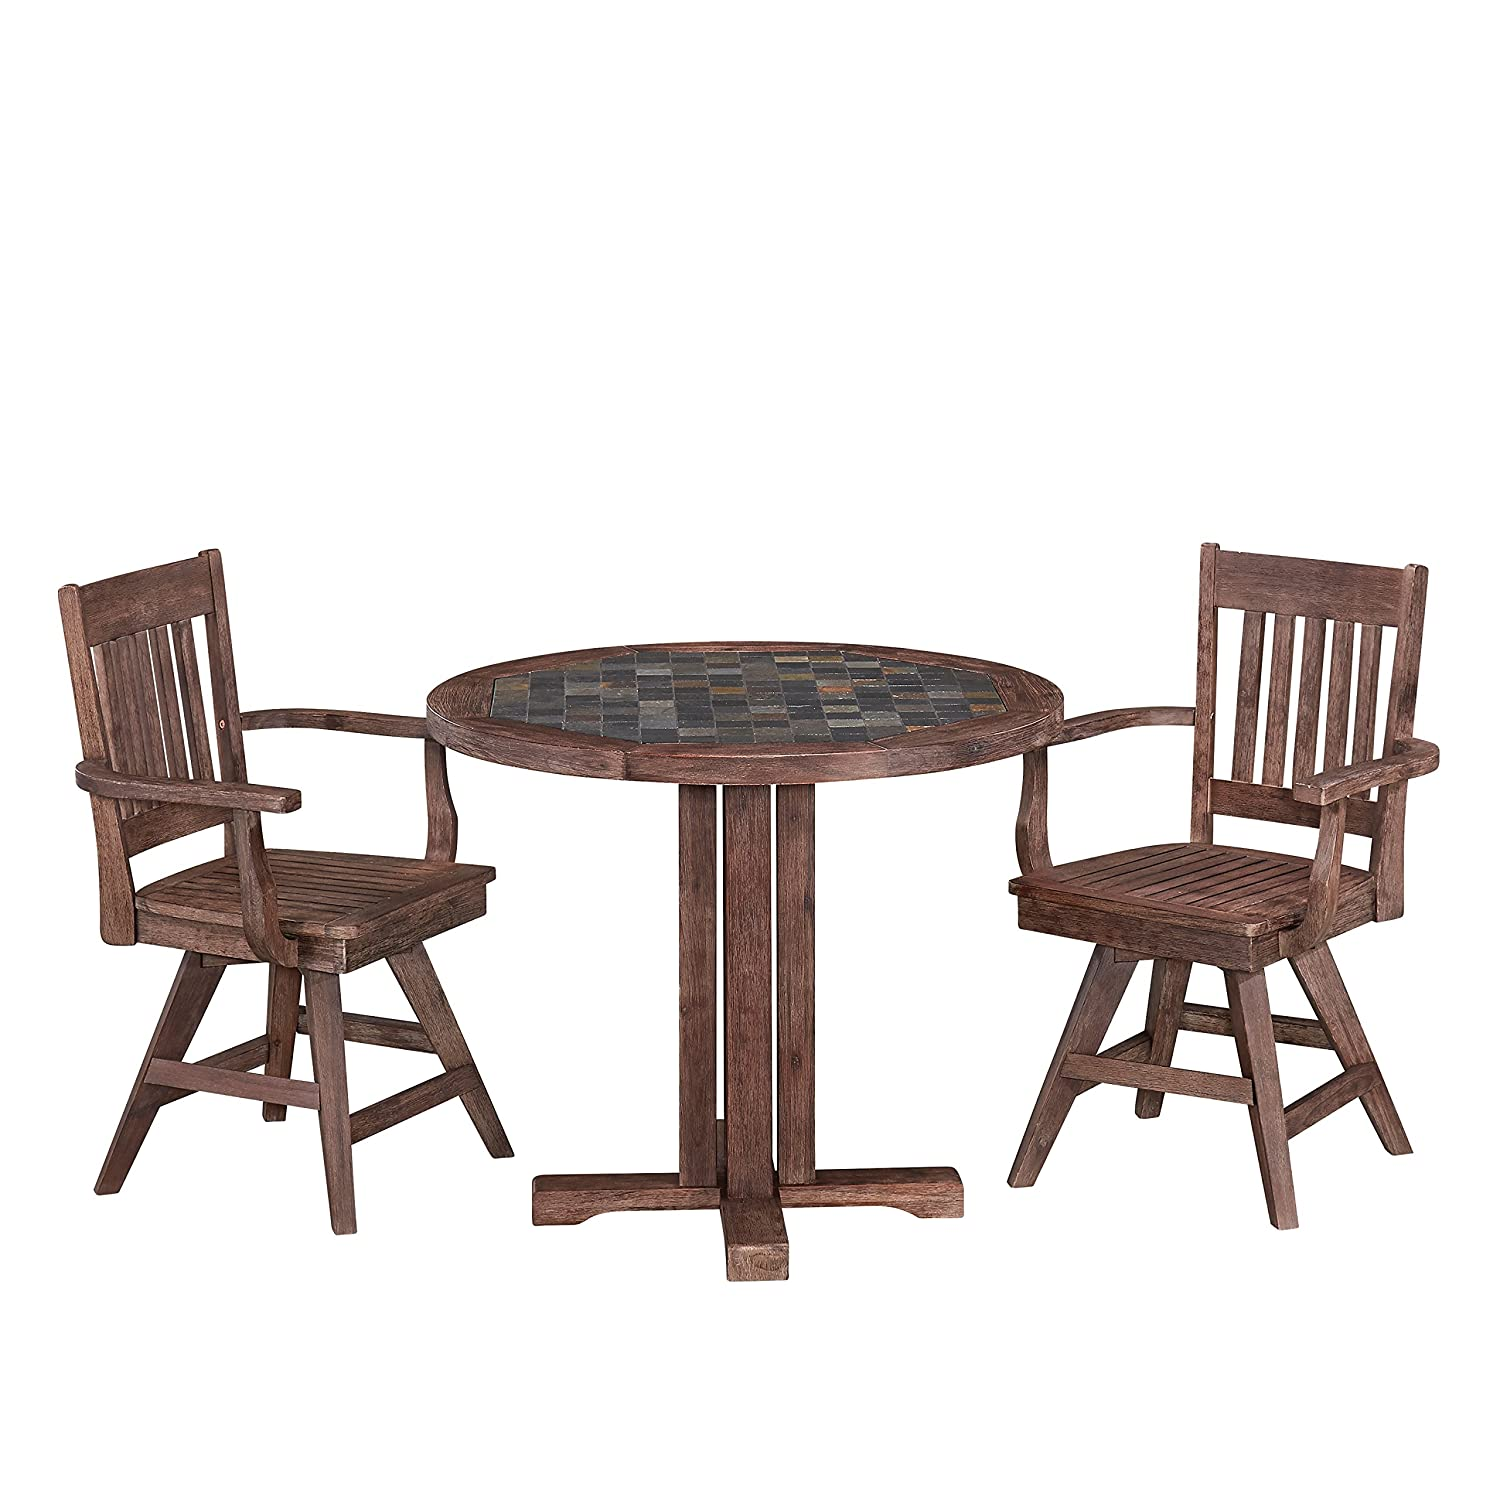 Sensational Amazon Com Morocco Dining Set With Round Table And Two Evergreenethics Interior Chair Design Evergreenethicsorg